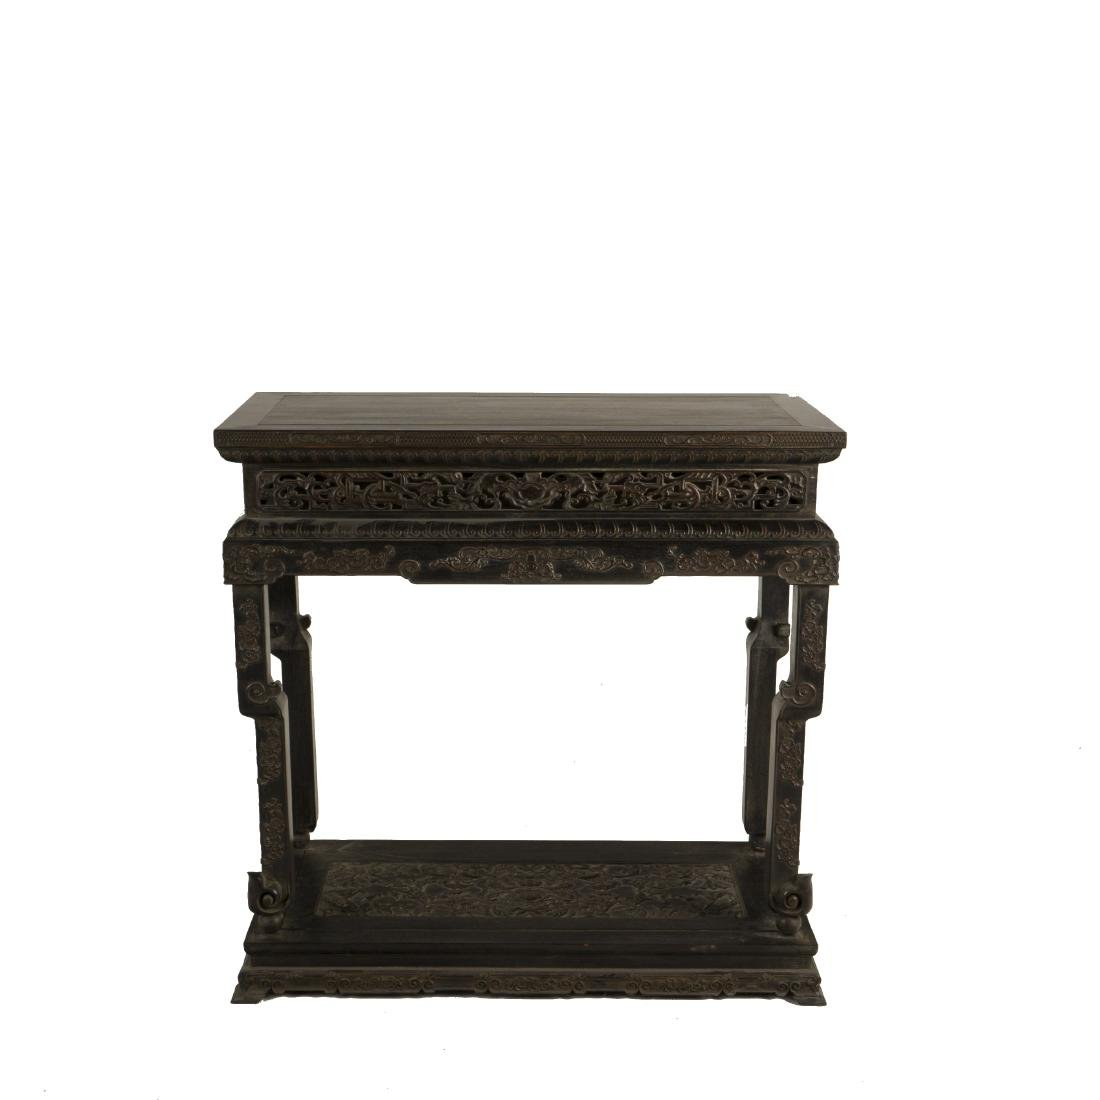 18/19TH C CARVED ZITAN SIDE TABLE IN ROCOCO MOTIF